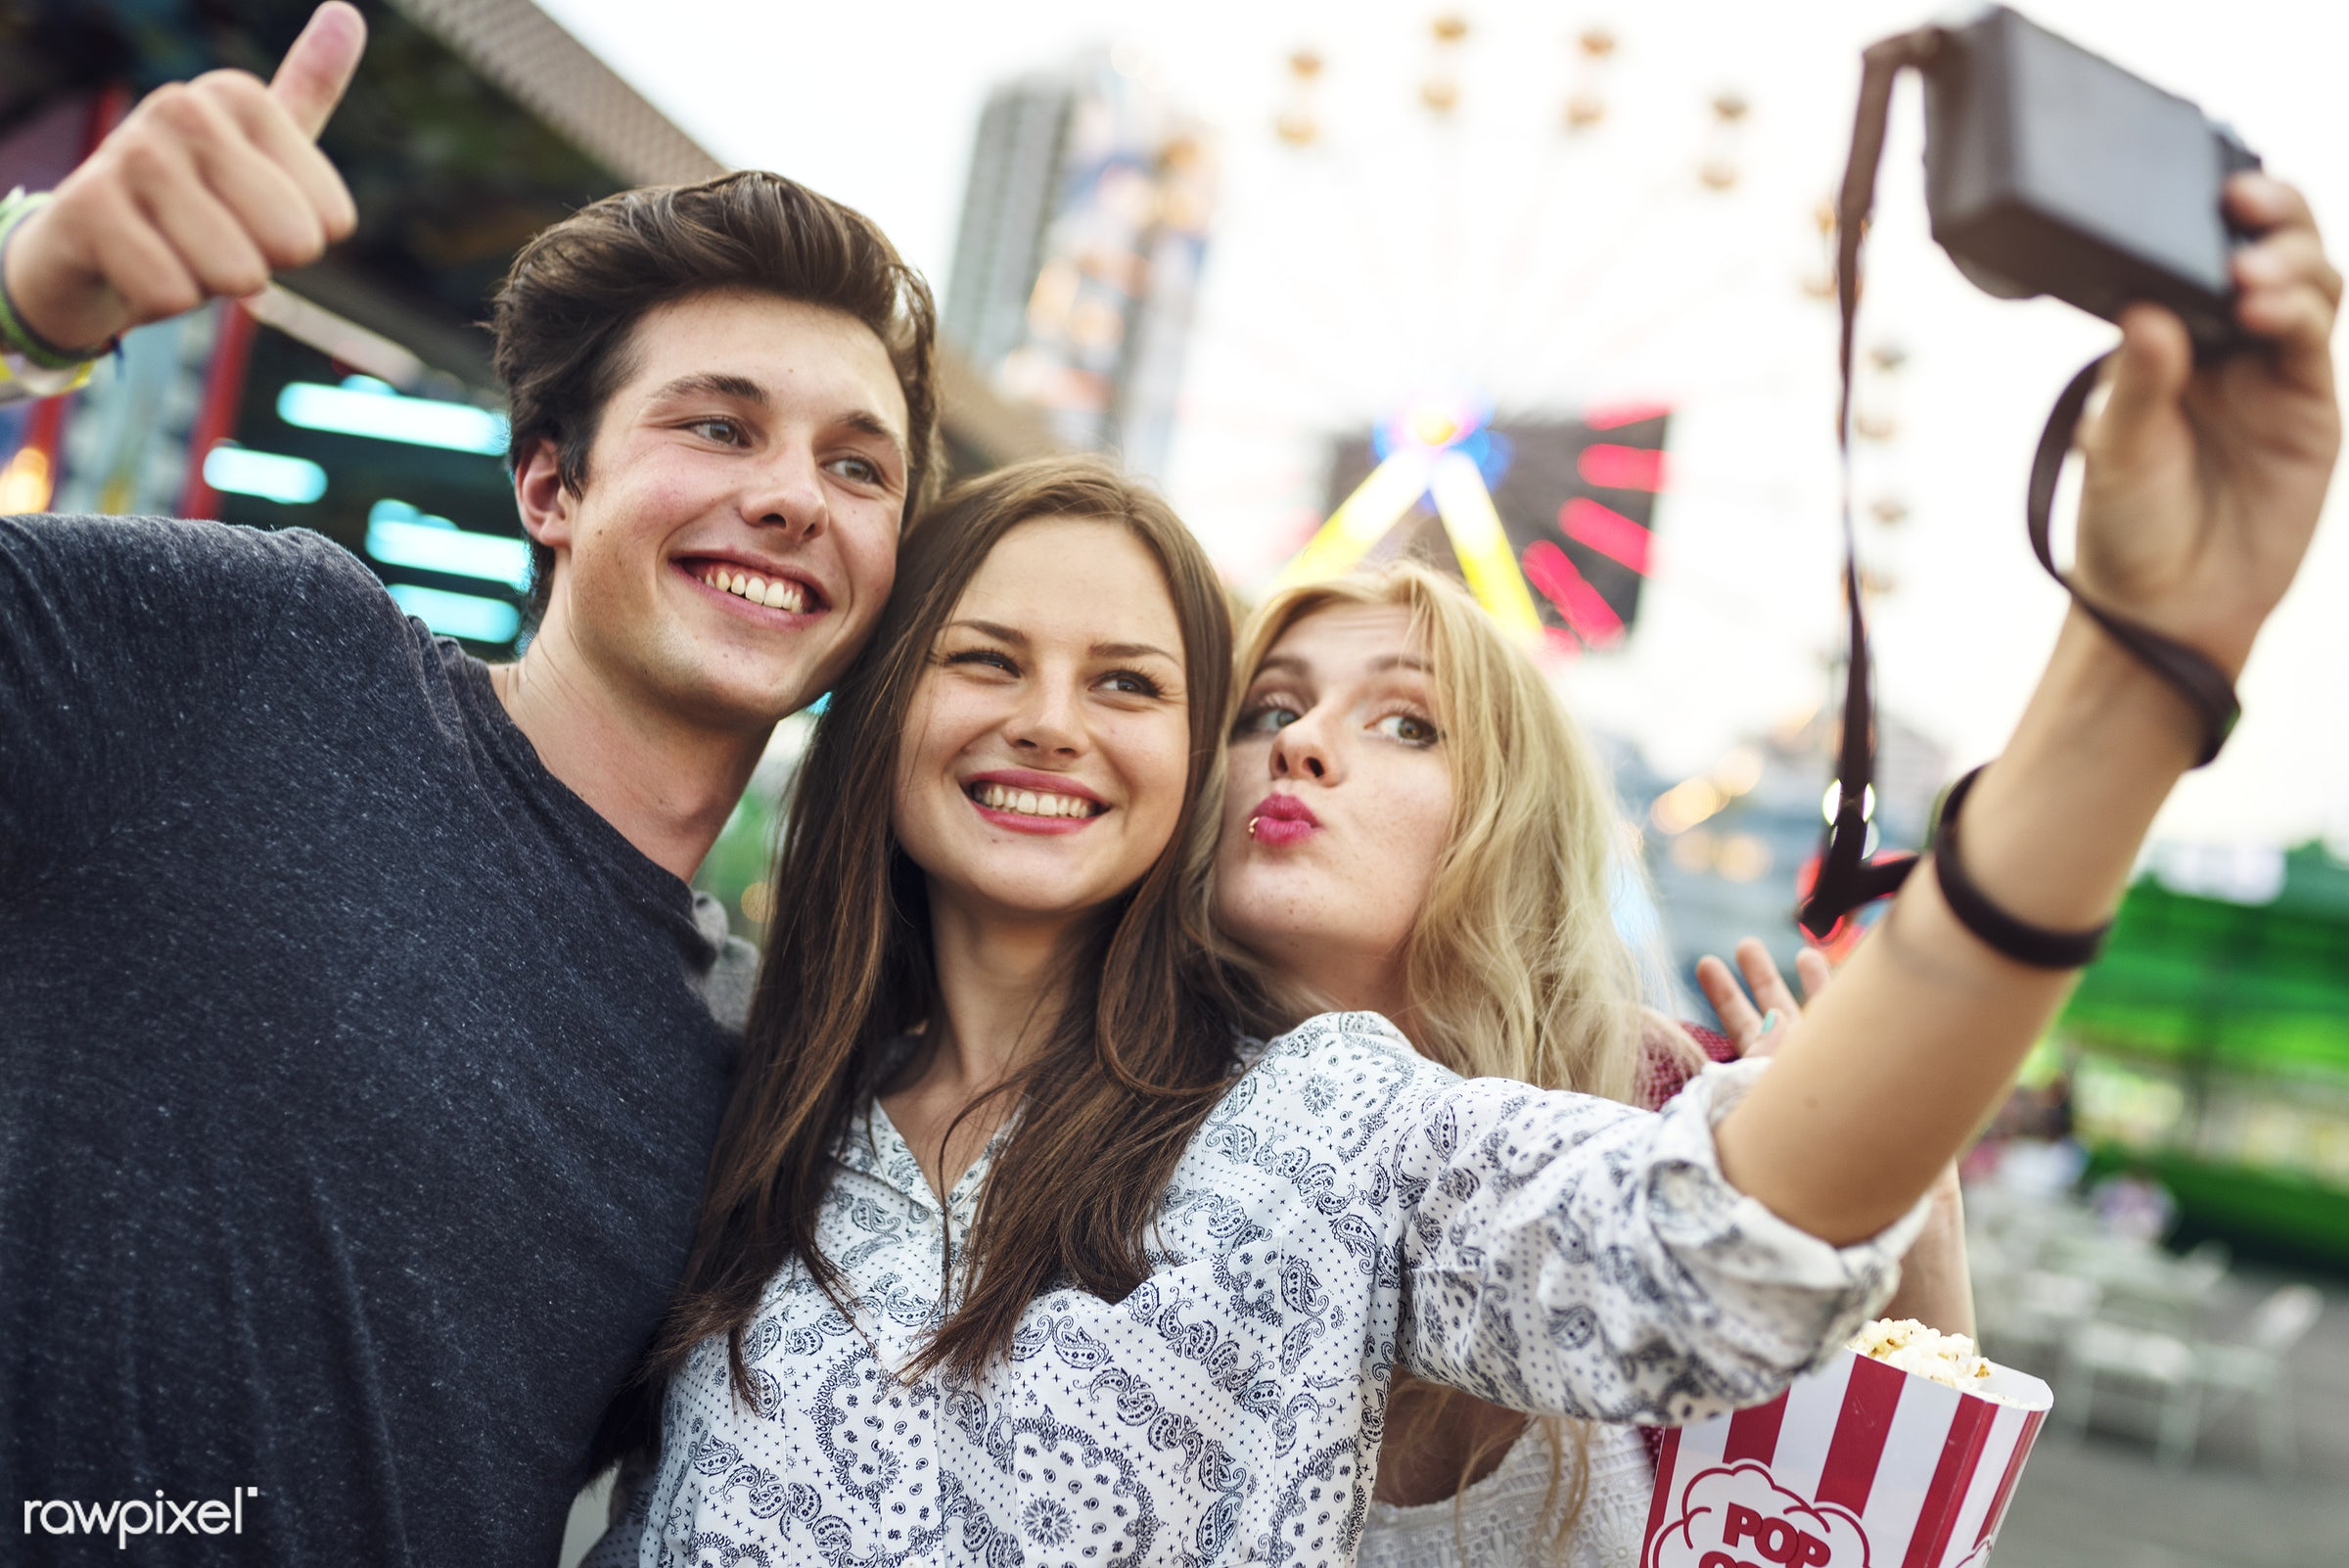 selfie, camera, youth, fun, happiness, snack, amusement park, caucasian, device, digital, eat, enjoyment, expression,...